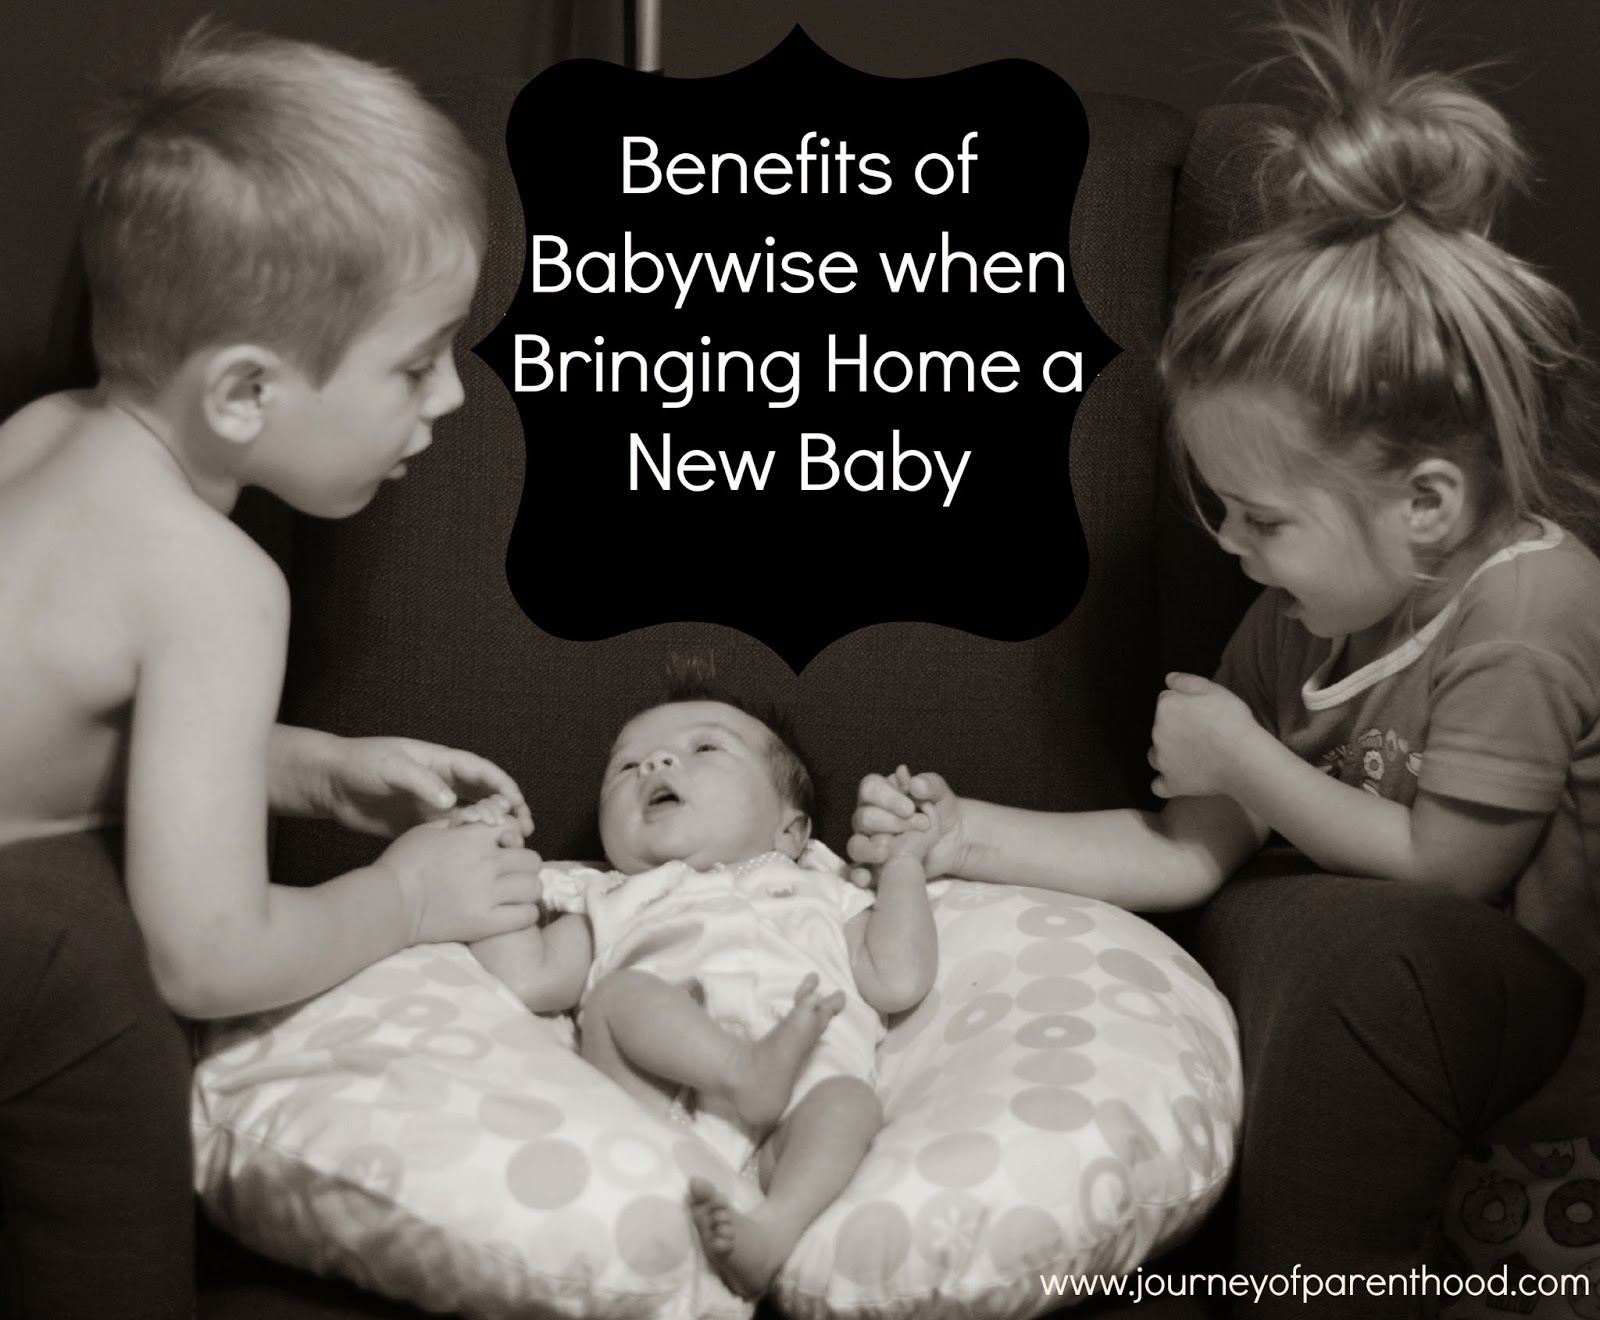 Babywise Benefits when Bringing Home a New Baby